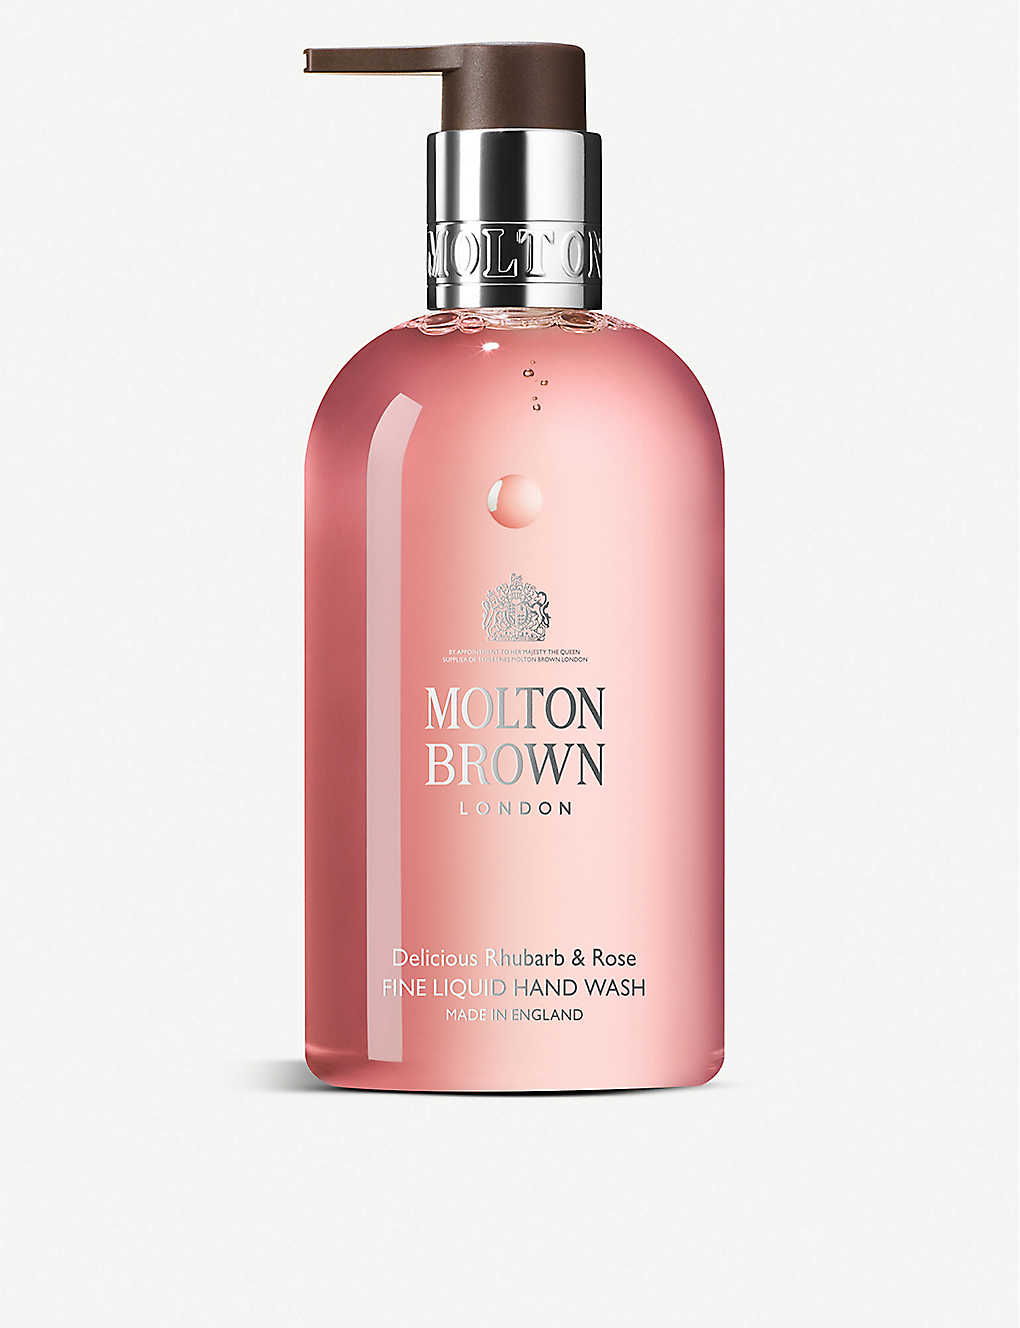 MOLTON BROWN: Rhubarb & Rose Liquid Hand Wash 300ml